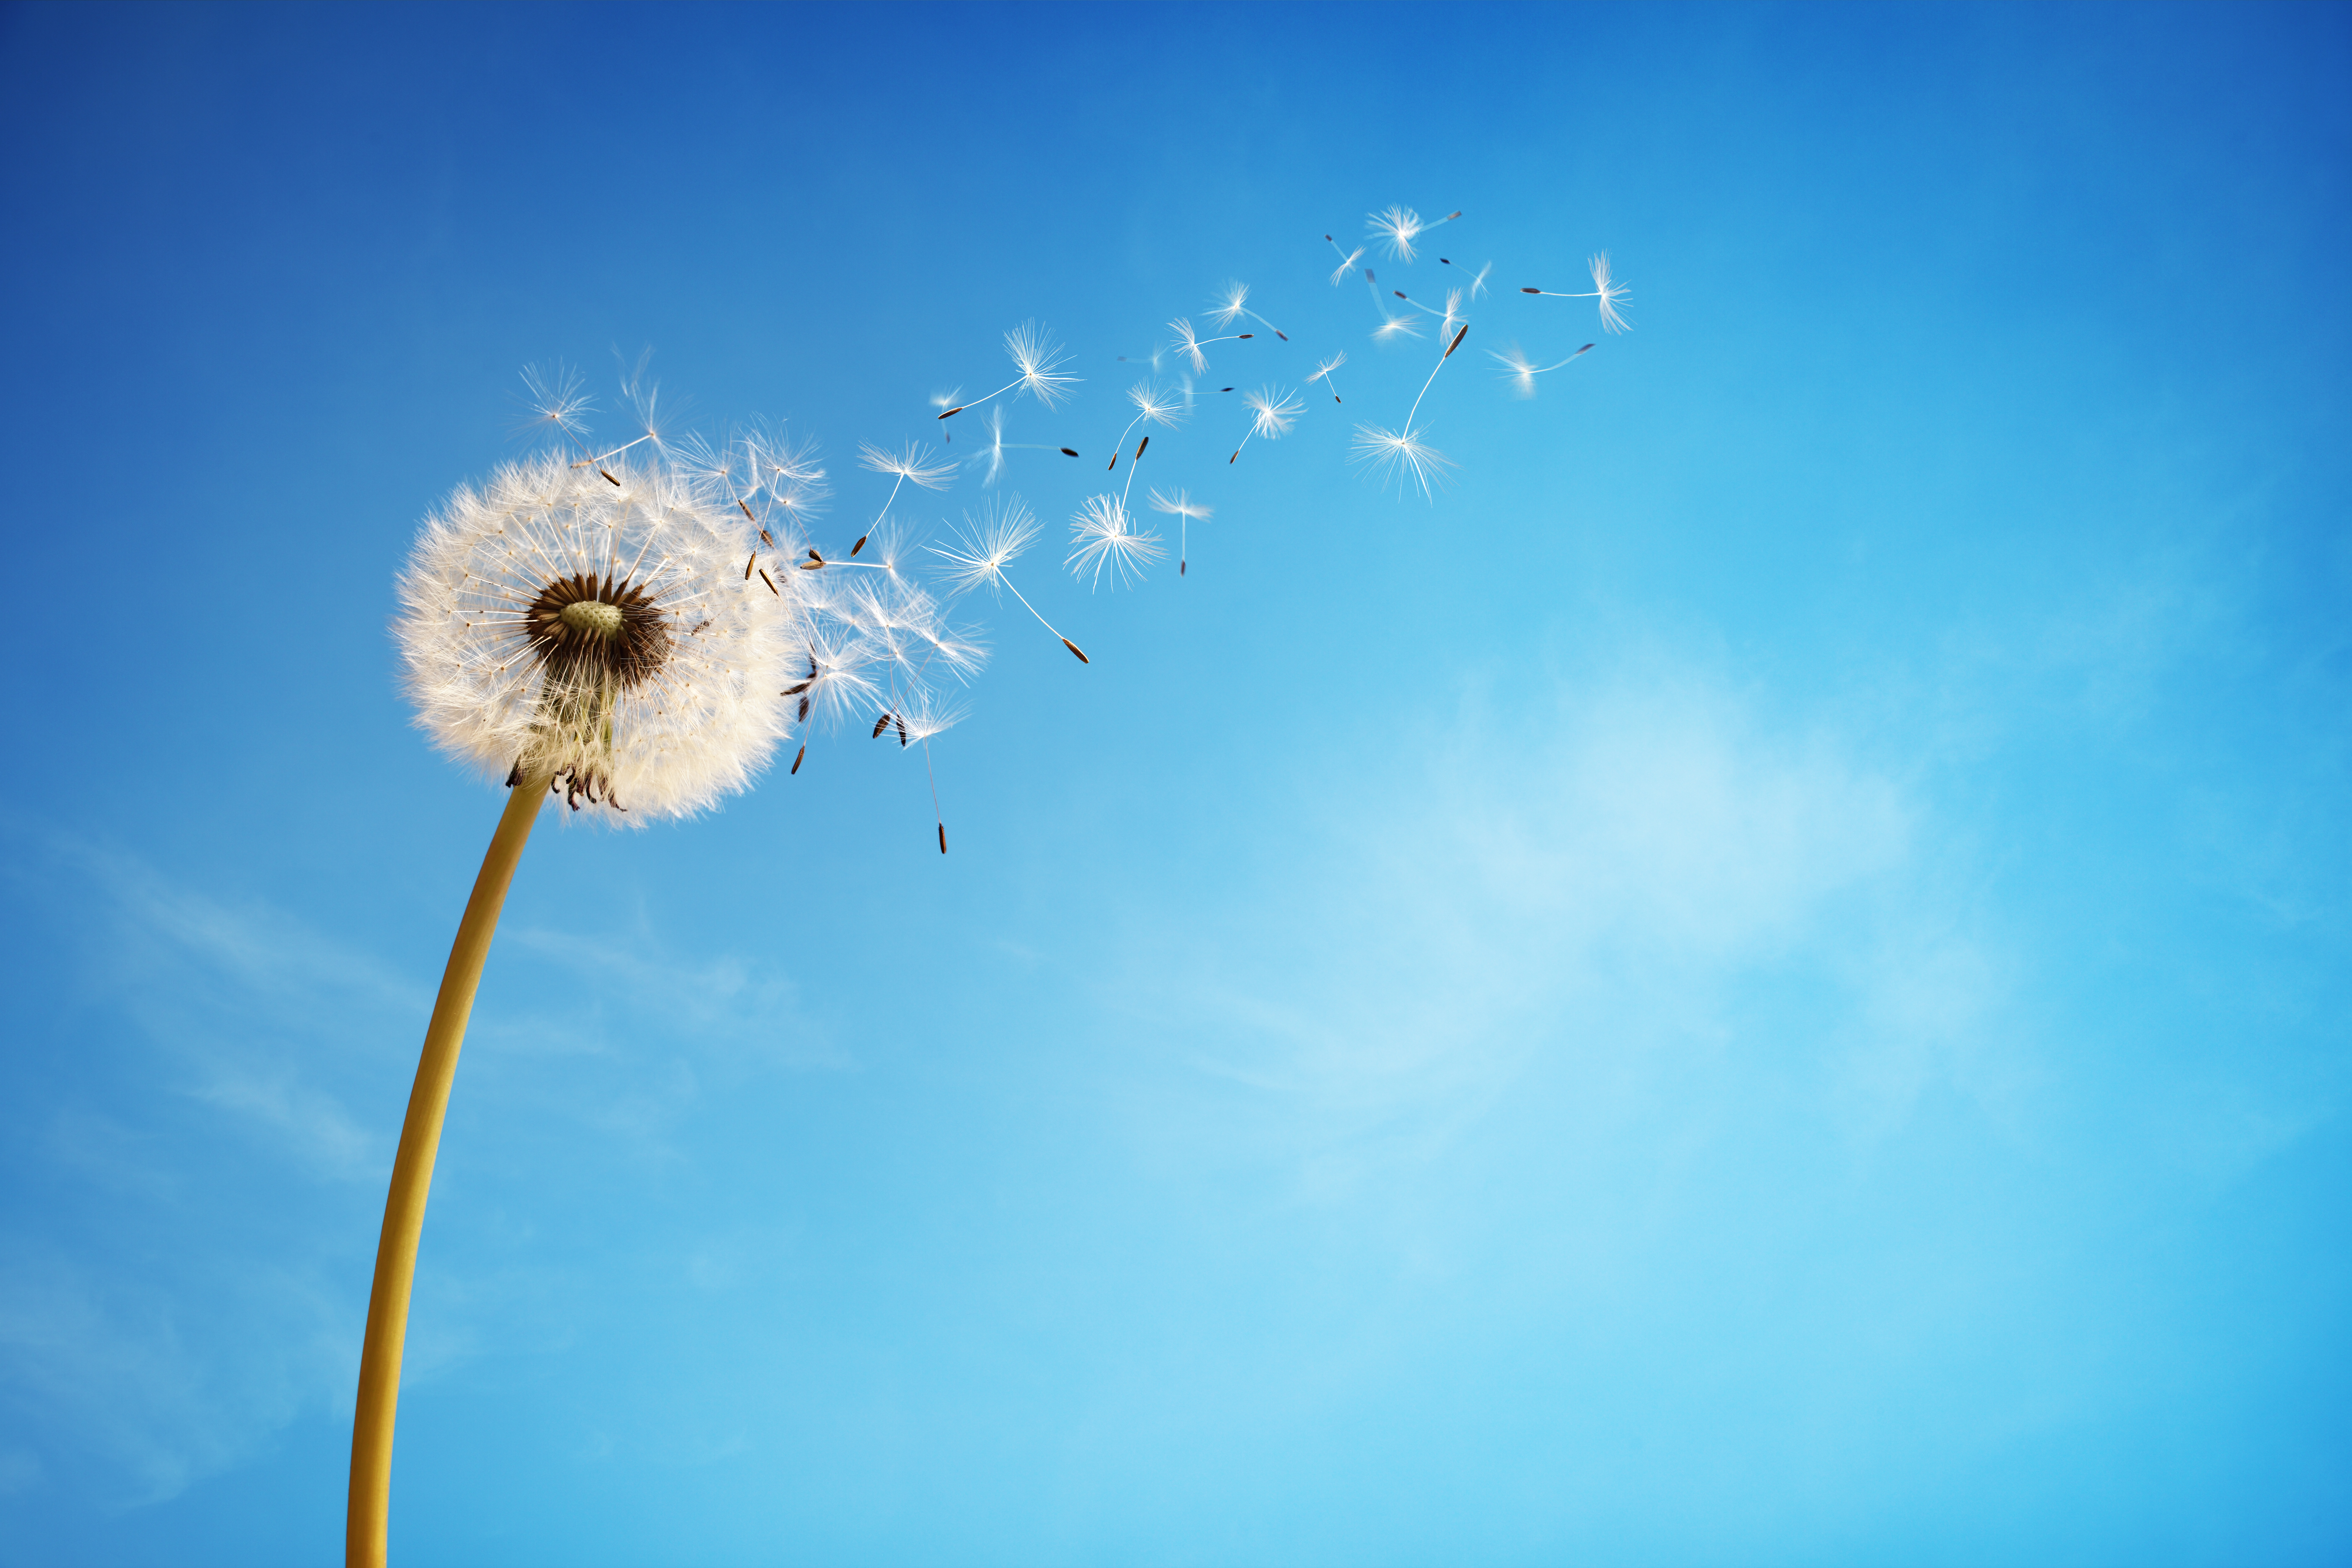 Dandelion_with_seeds_blowing_away